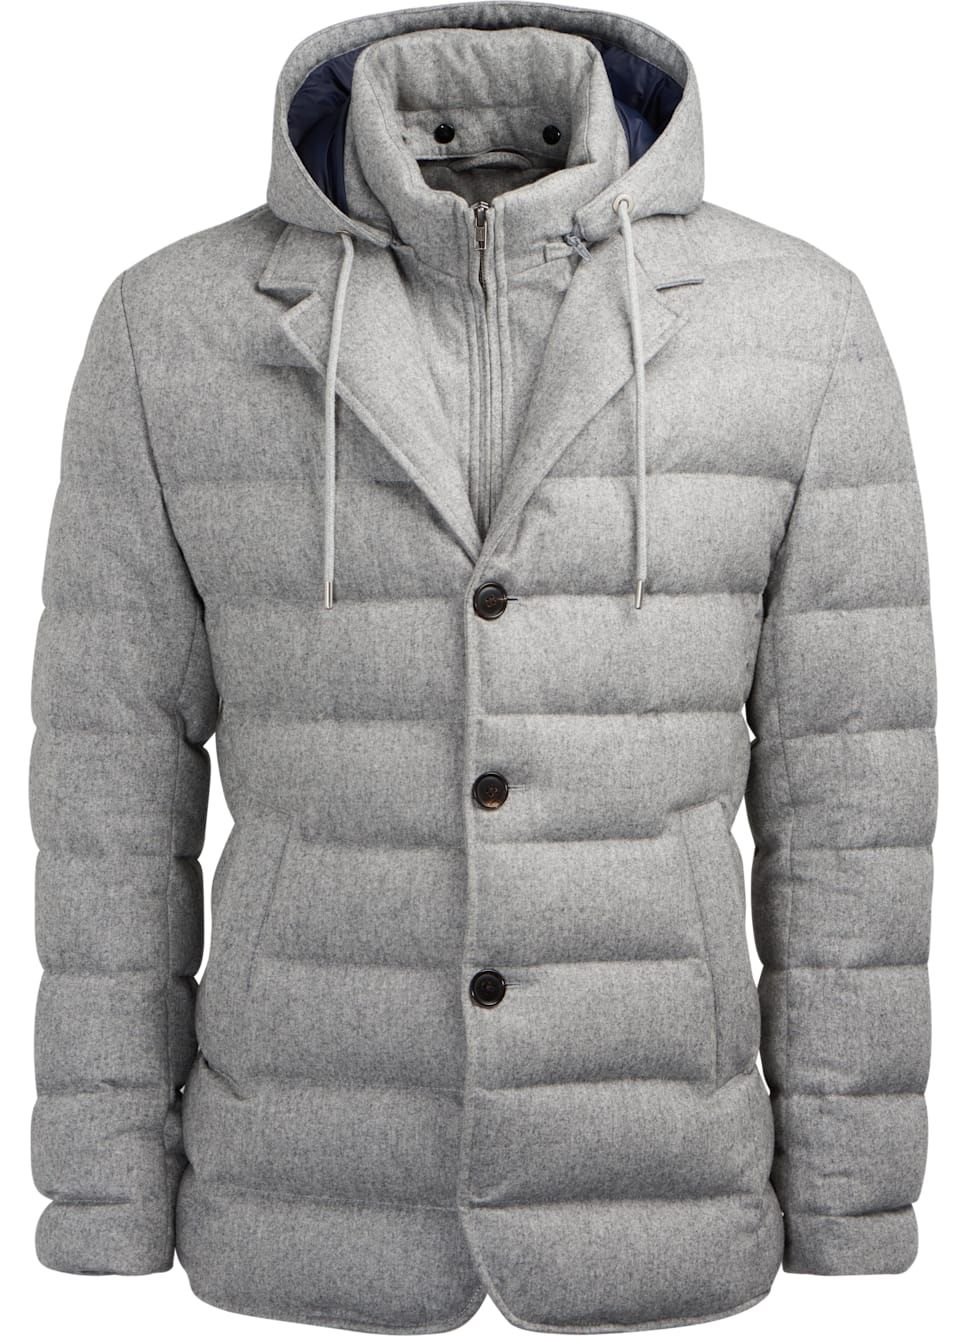 9a1a6f68657 Light Grey Down Jacket J642i | Suitsupply Online Store | Colin ...